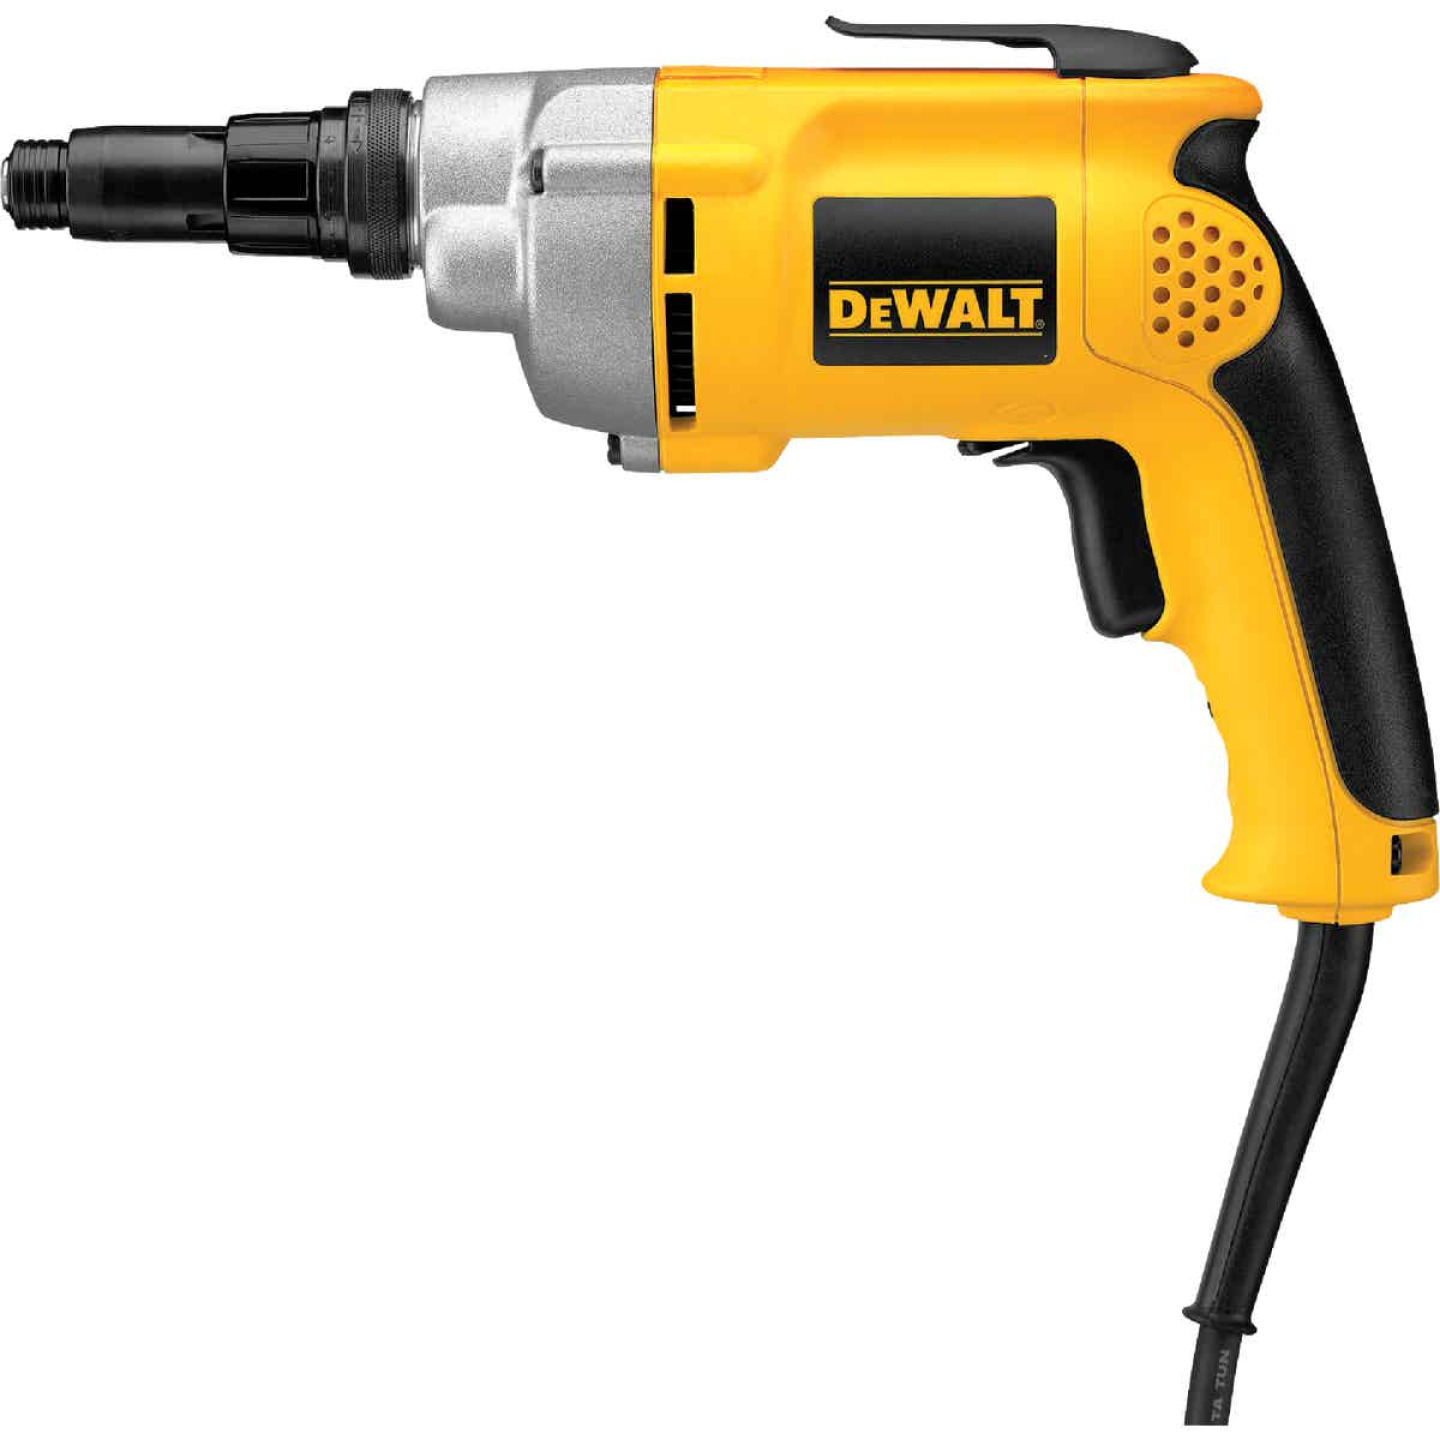 DeWalt 6.5A/2500 rpm 132 In./Lb. Torque Electric Screwgun Image 2